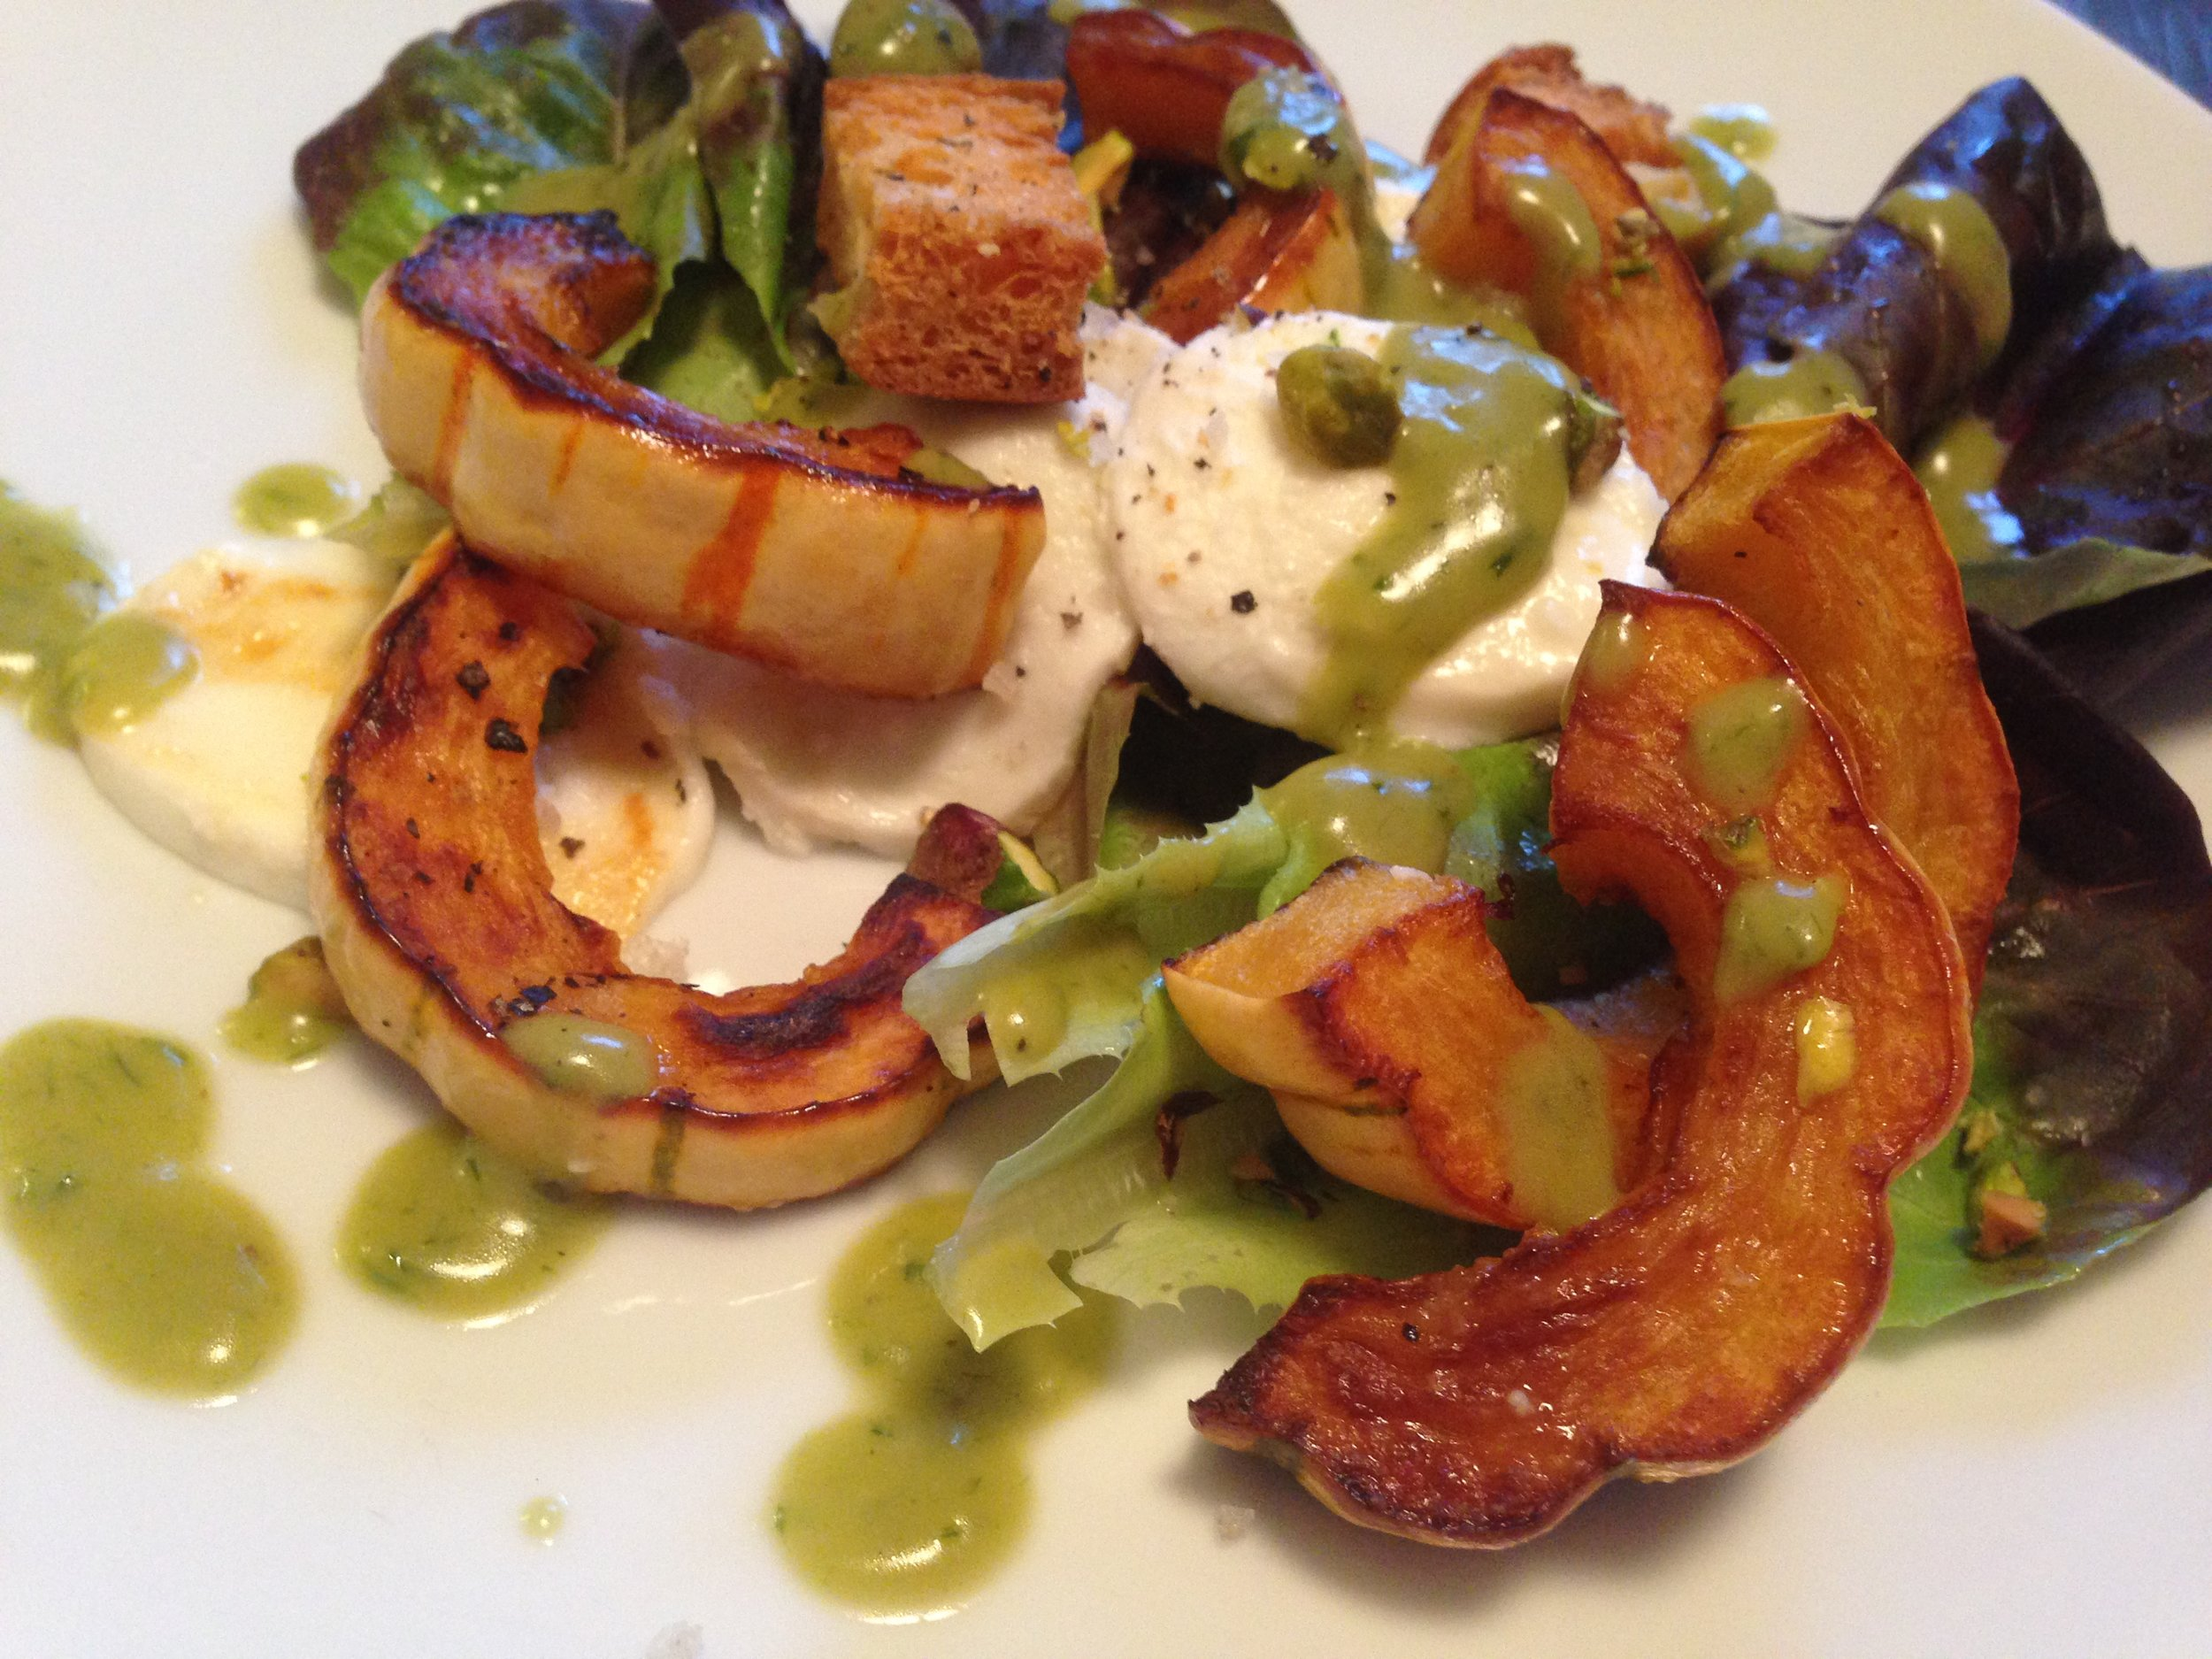 Plated Roasted Squash Salad with Chive Dressing drizzled over the top.